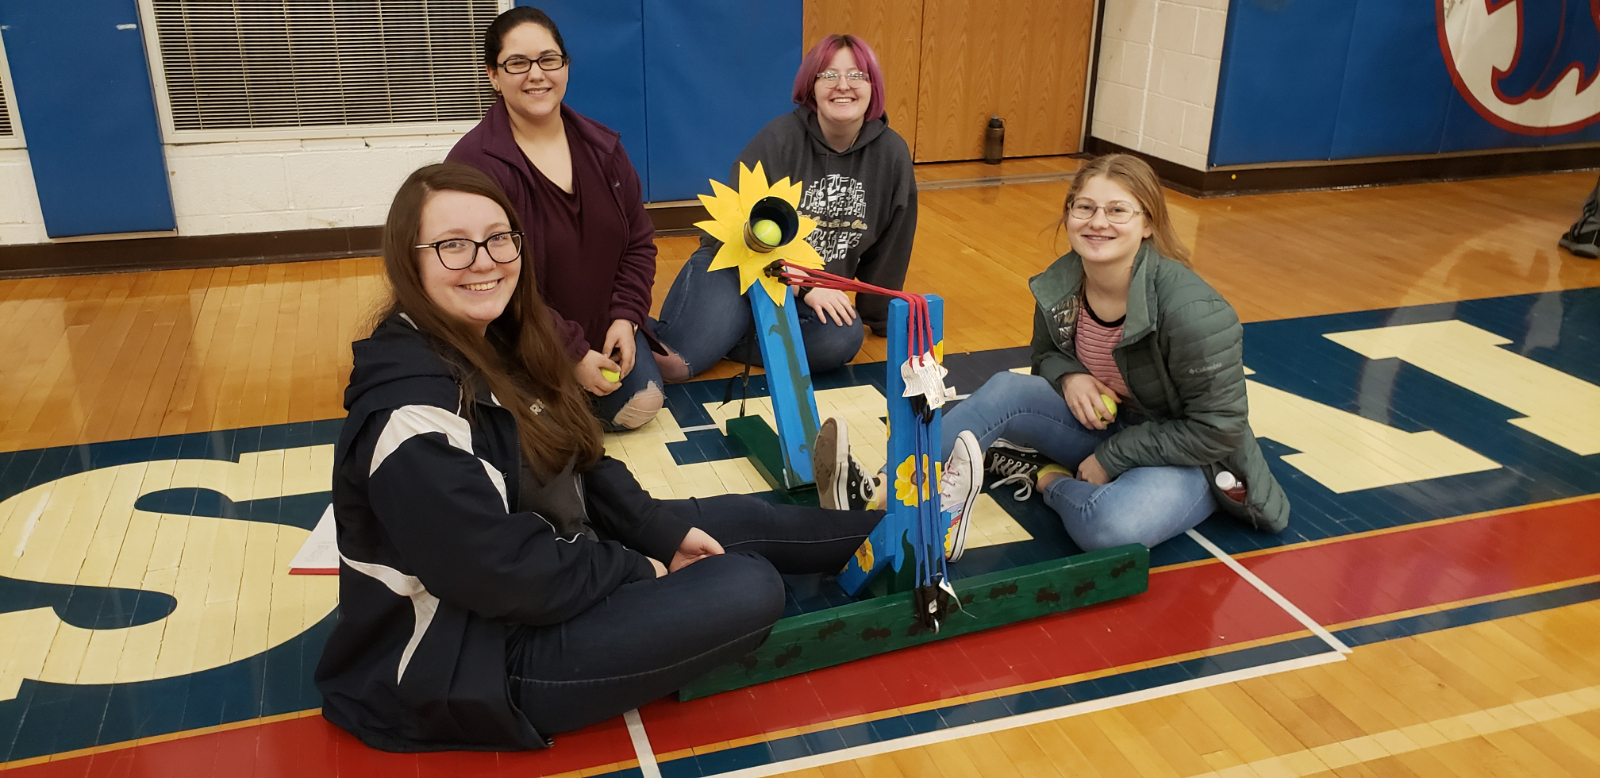 Team competes at Shaler STEAM Competition!